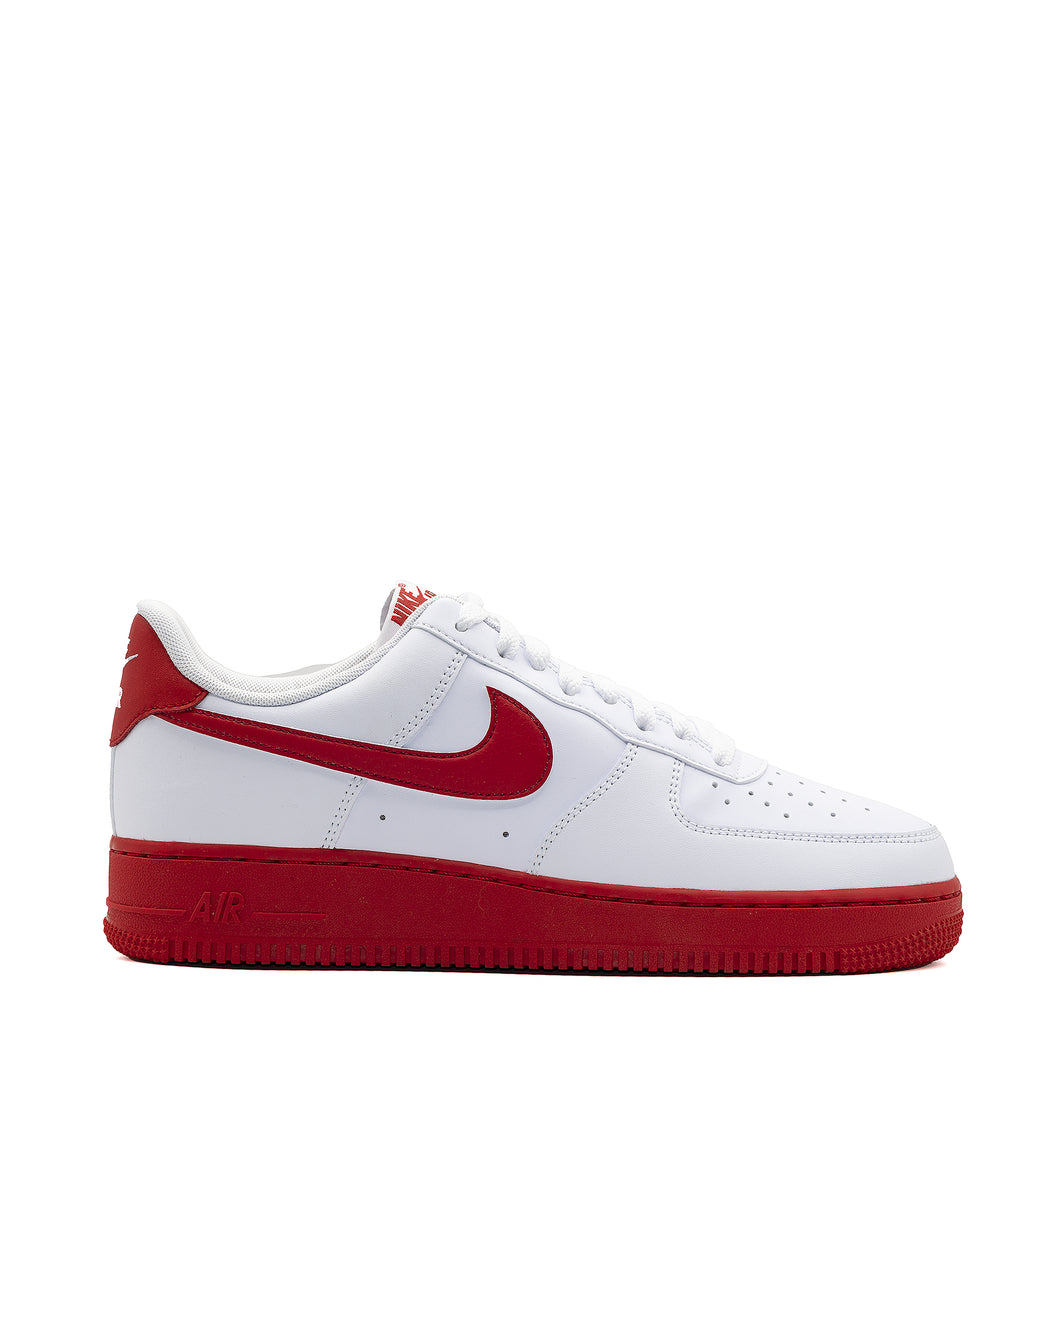 Nike Air Force 1 '07 White/University Red